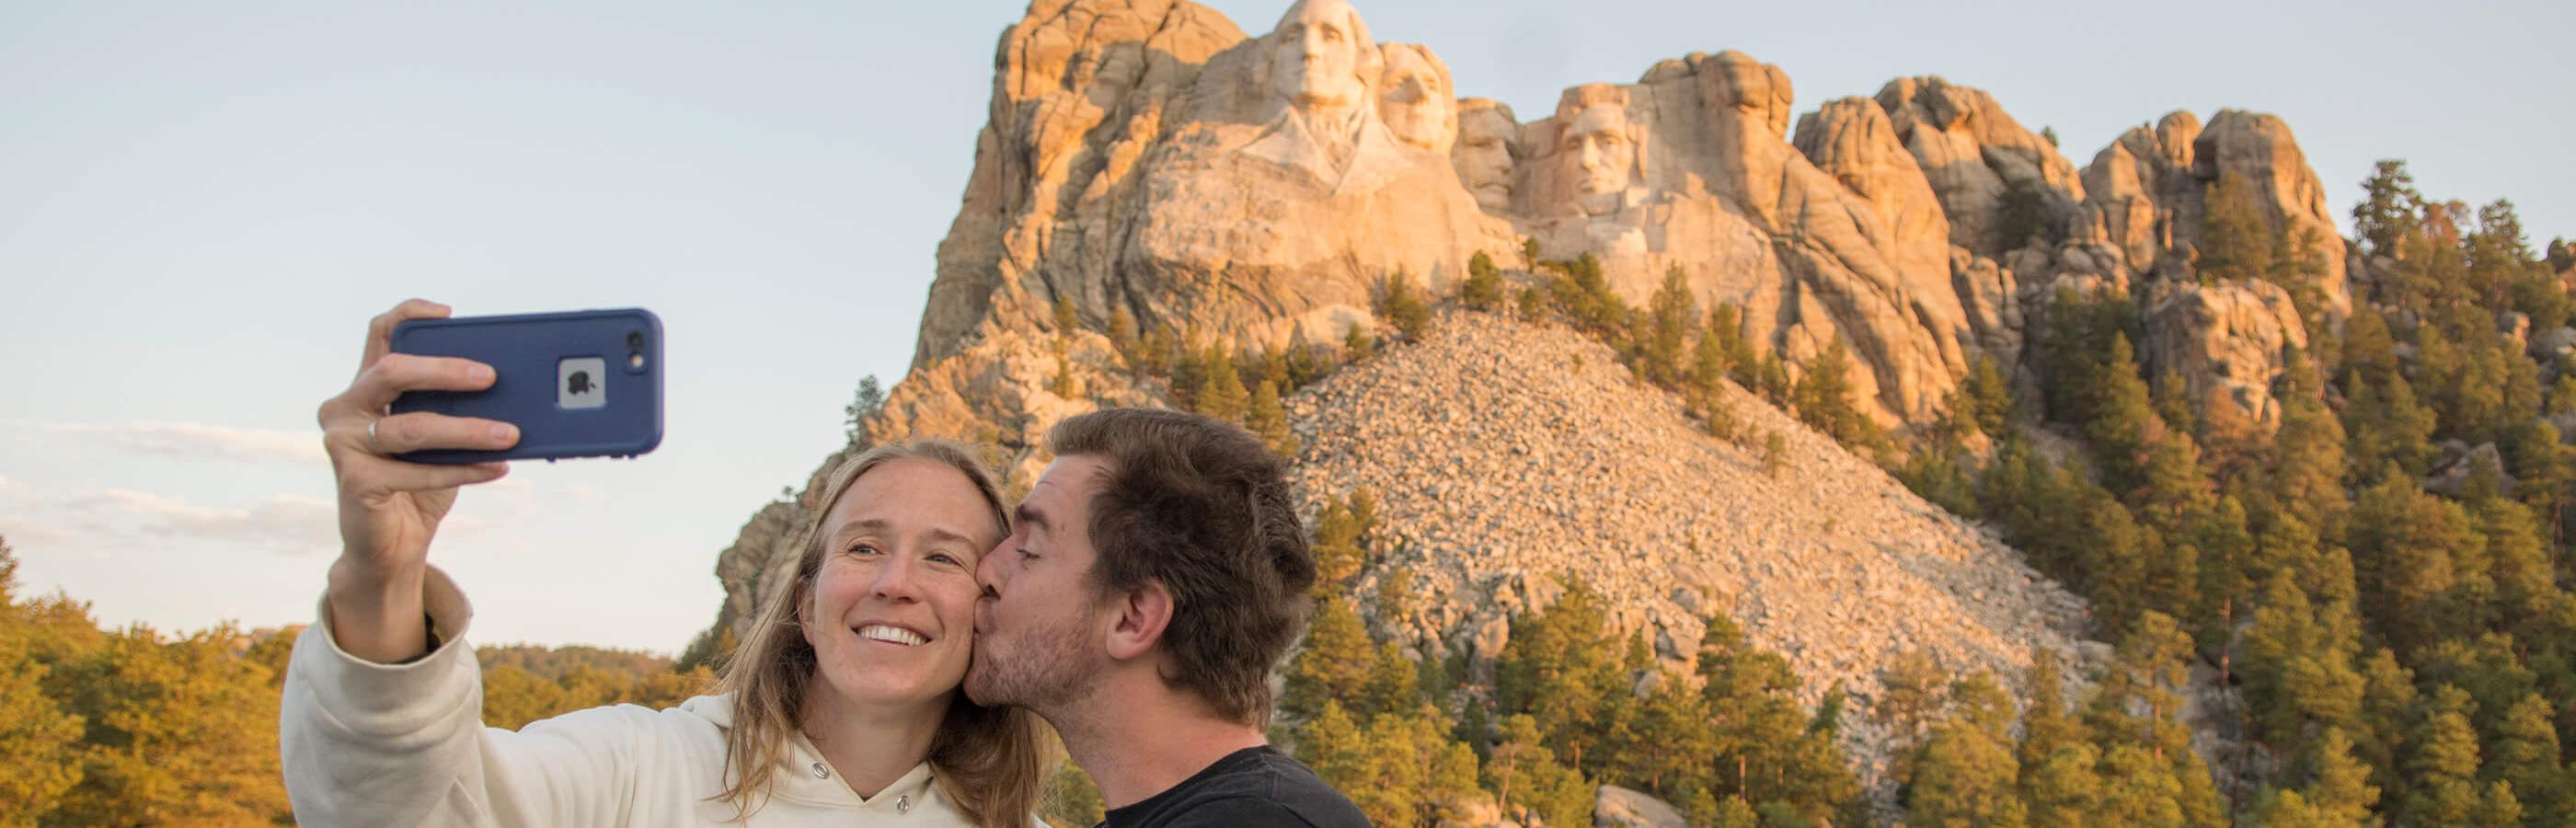 Couple taking a selfie at Mount Rushmore